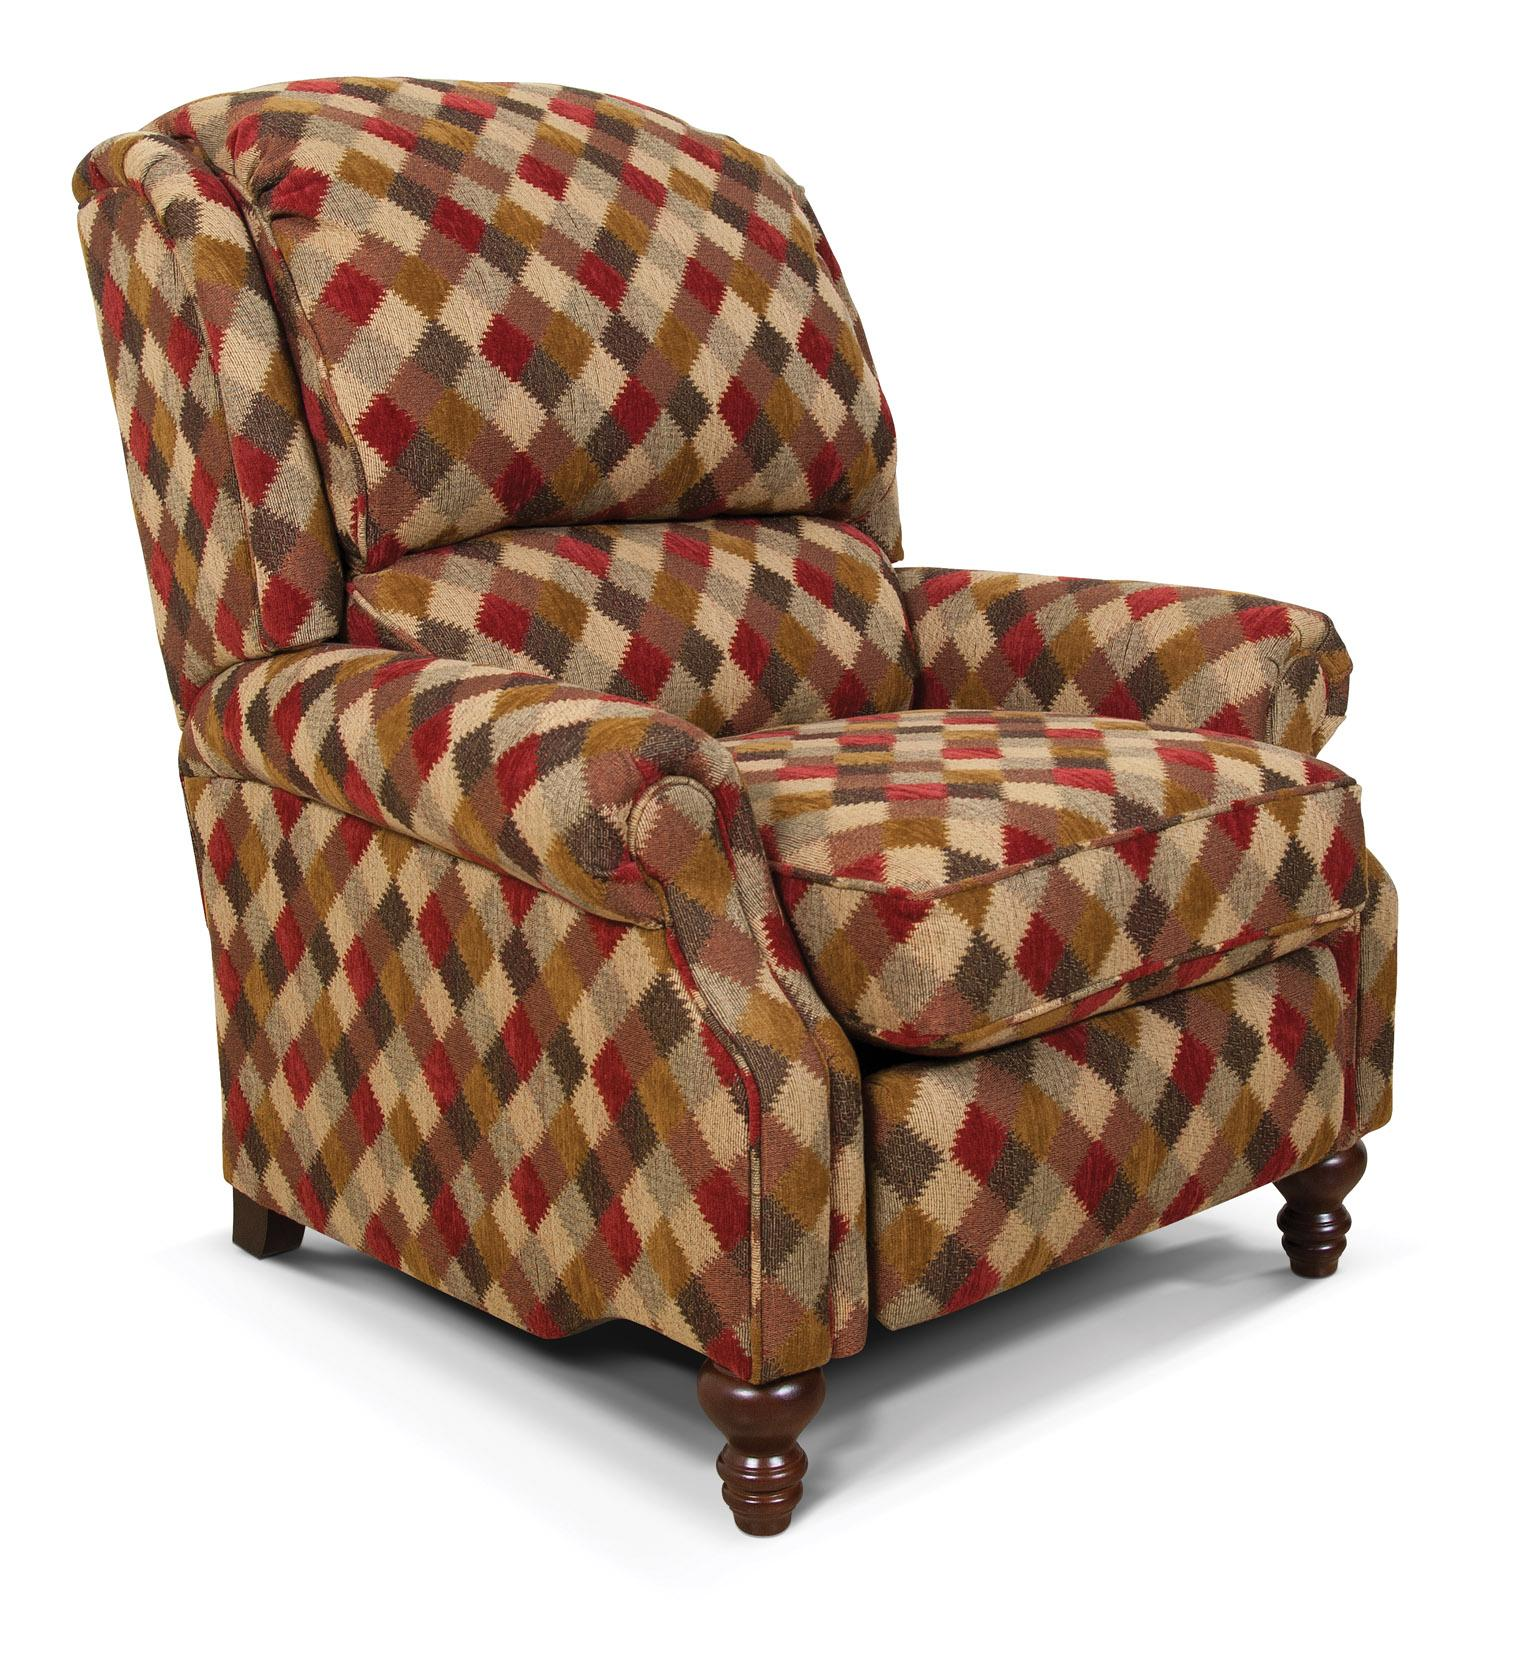 Frances Motion Chair by England at Esprit Decor Home Furnishings